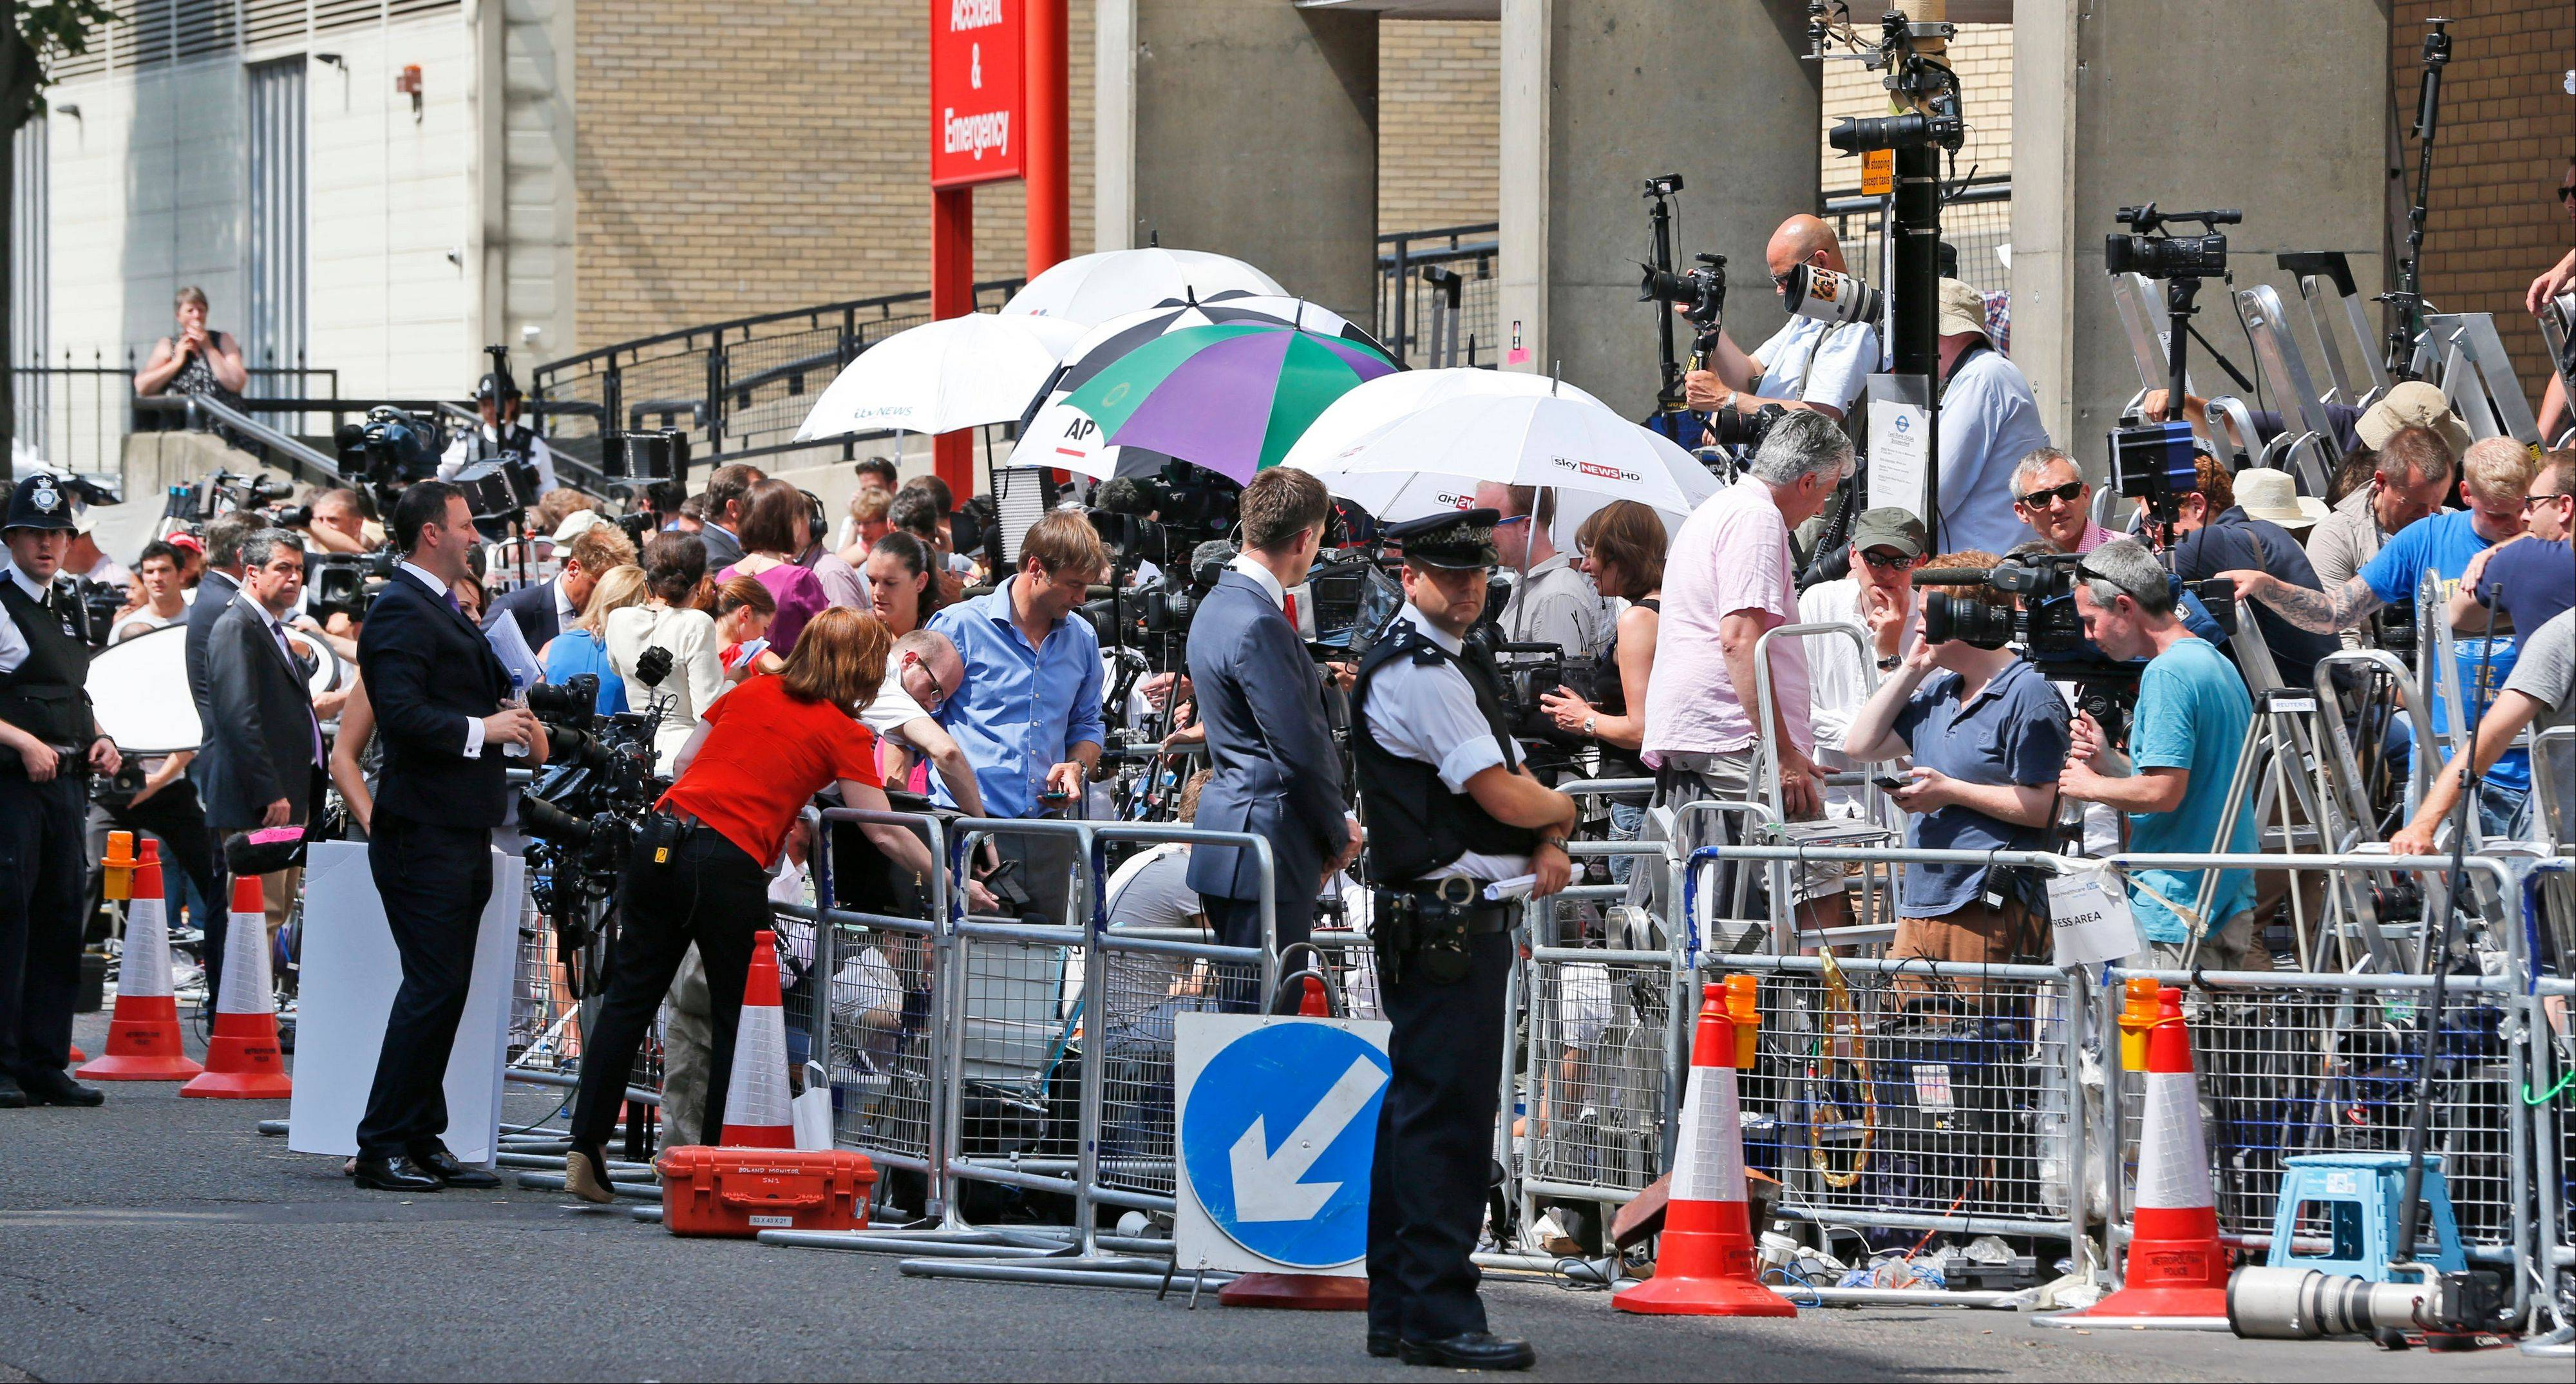 A British police officer, backdropped by members of the media, stands outside St. Mary's Hospital exclusive Lindo Wing in London, Monday.